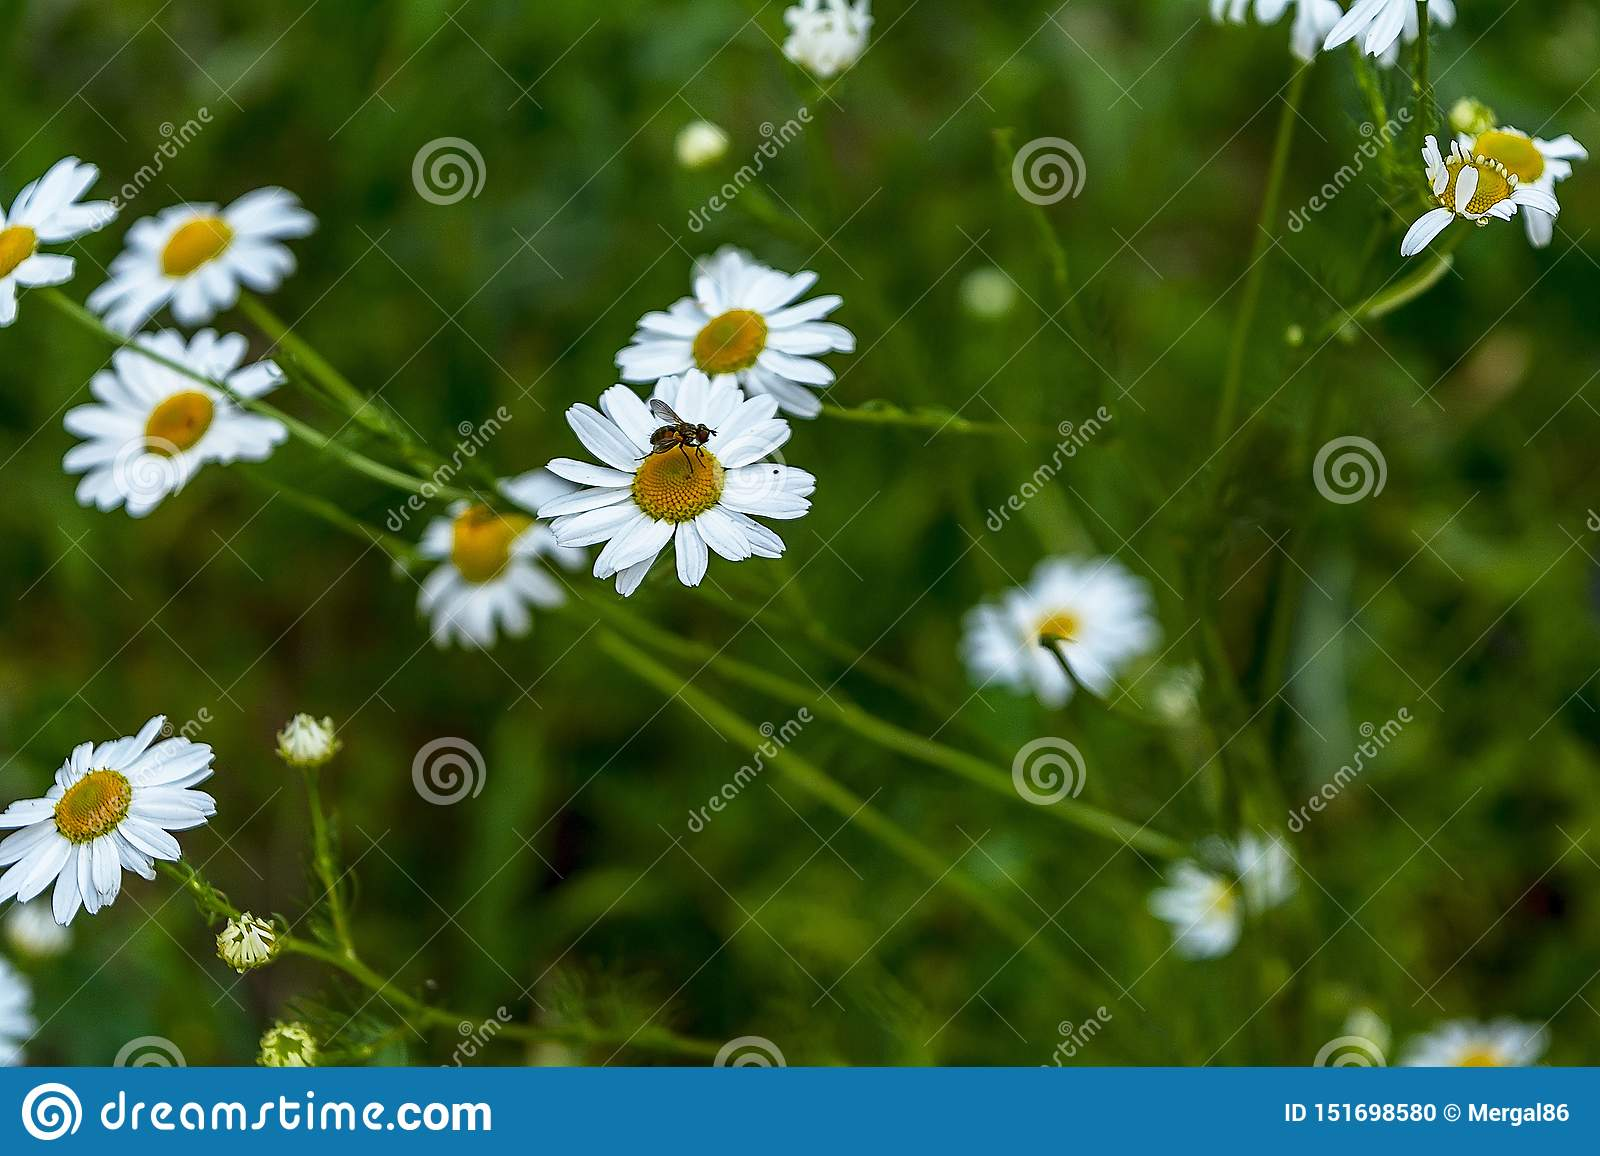 Flowering. Bug on the chamomile. Blooming chamomile field, Chamomile flowers on a meadow in summer, Selective focus